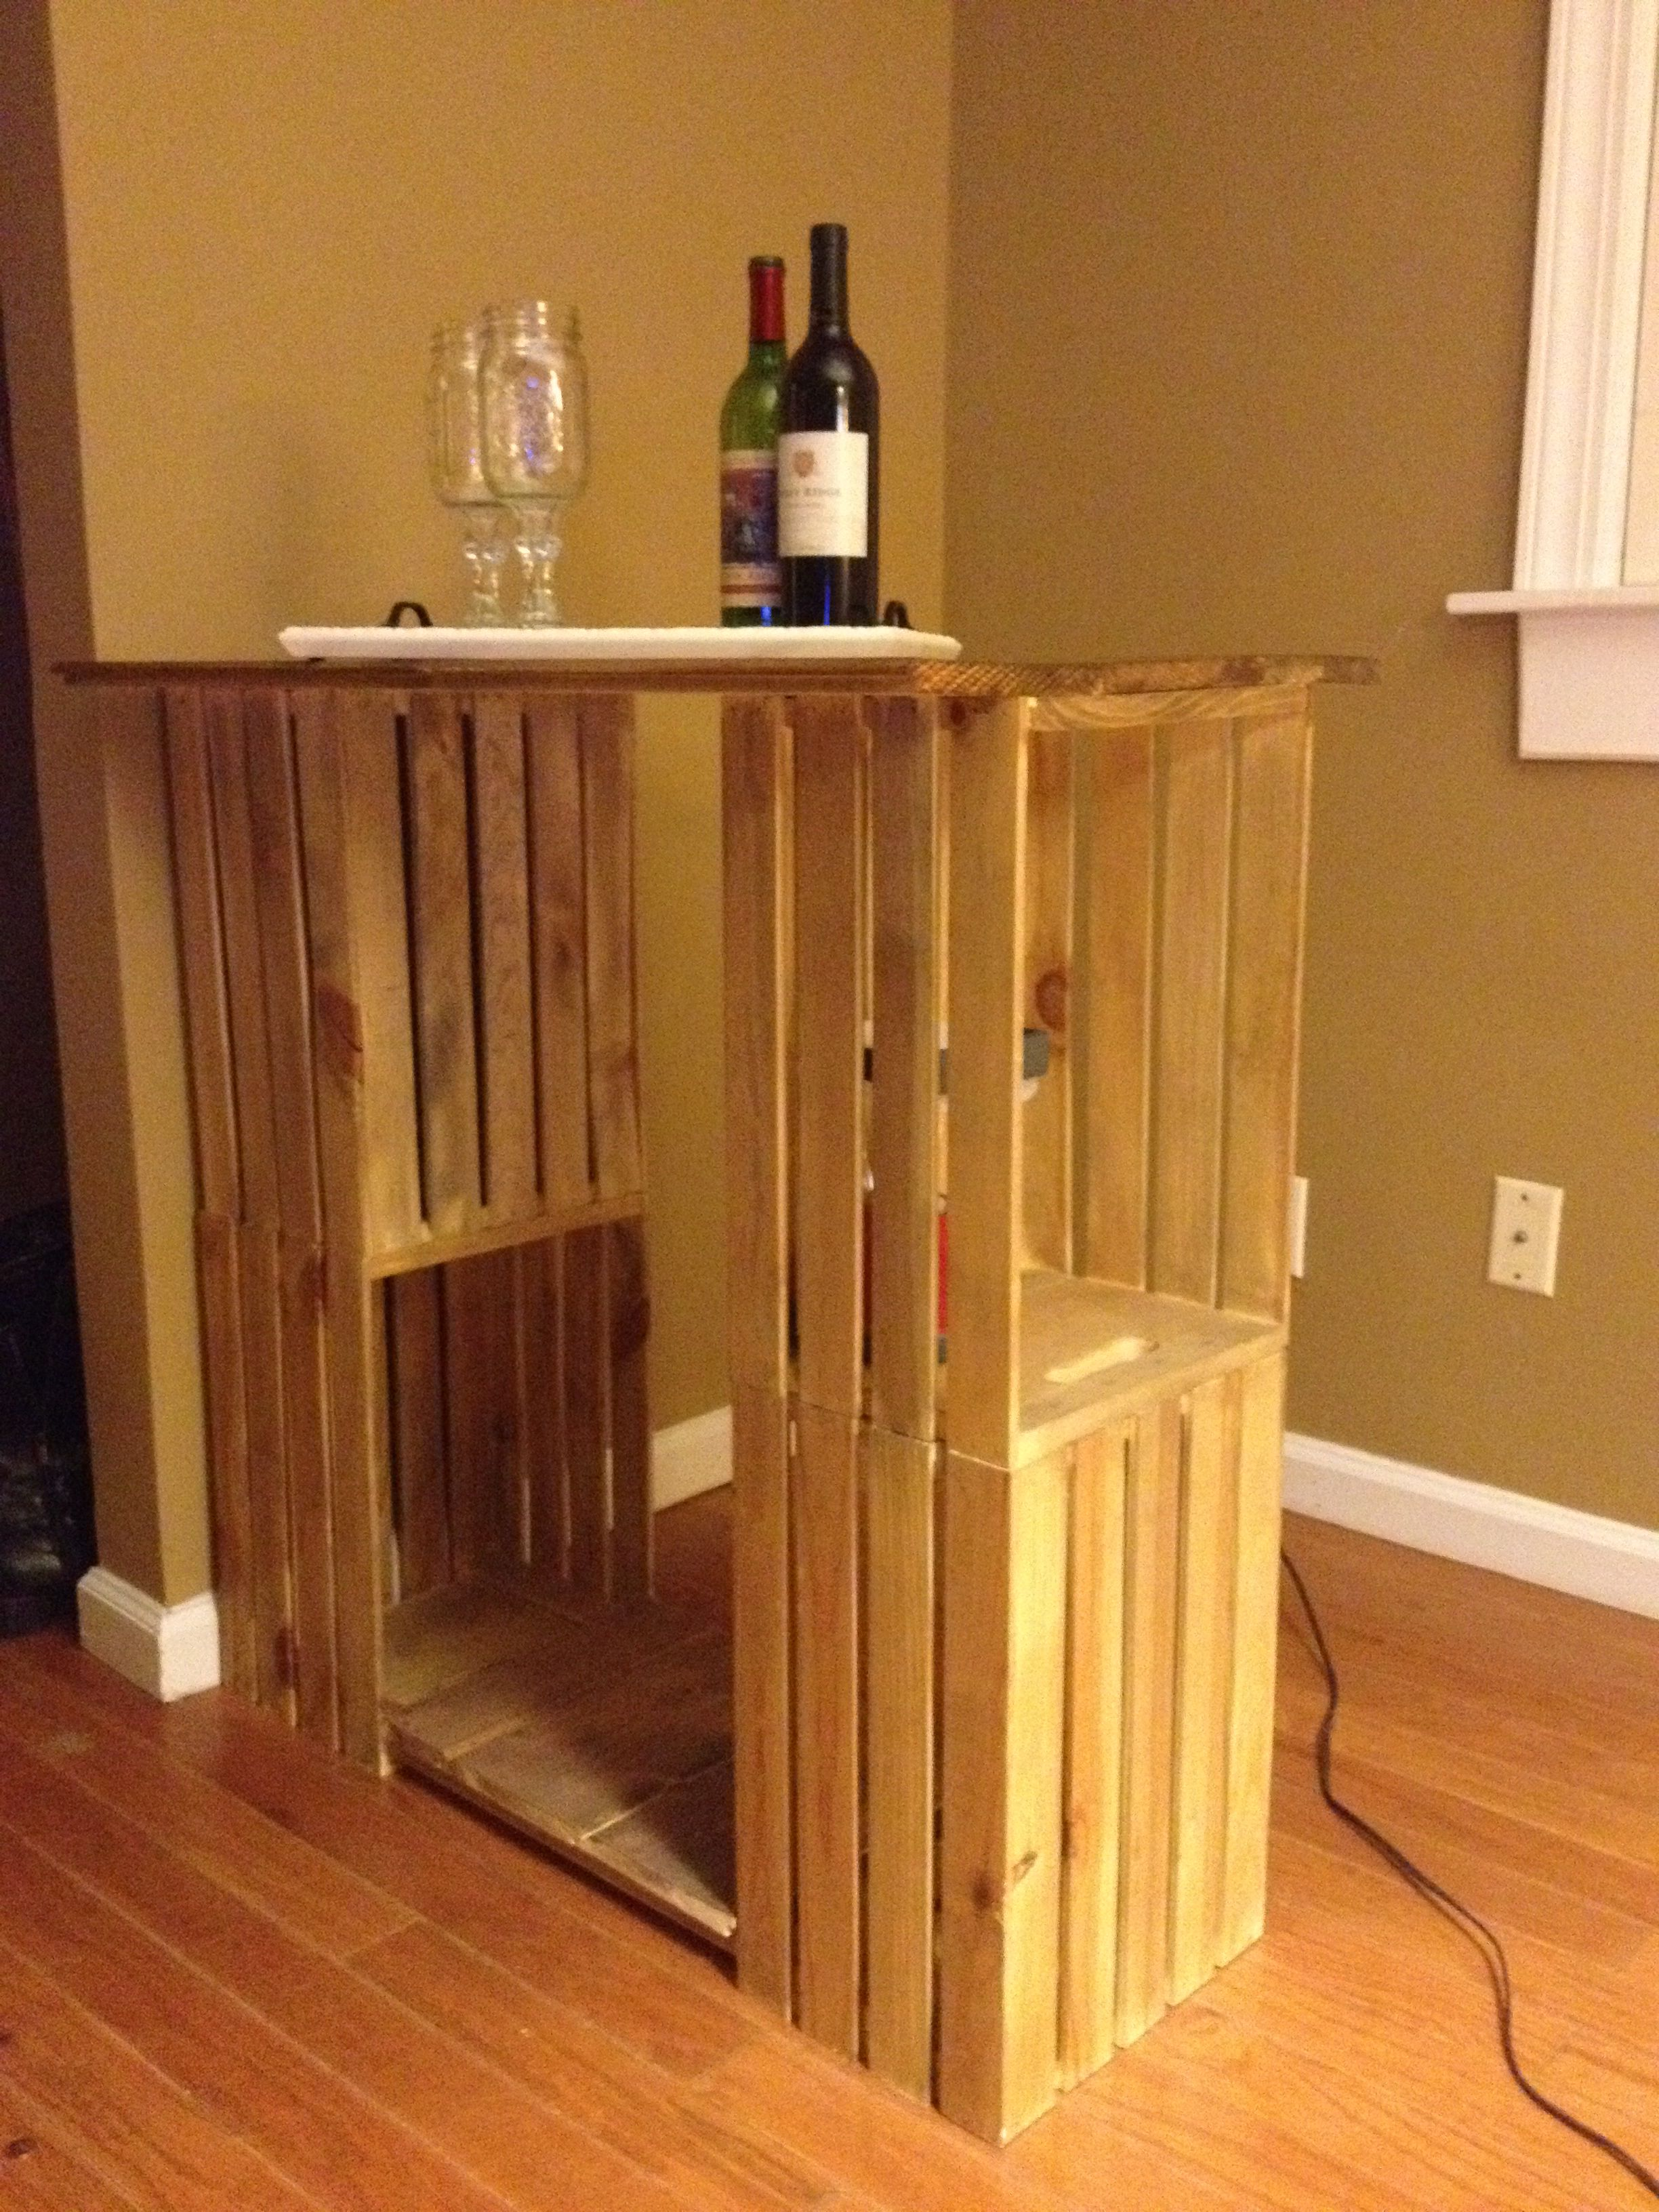 Kitchen Table With Storage Underneath Cabinet Outlet Bar Made From Wooden Crates Bought At Michael 39s And